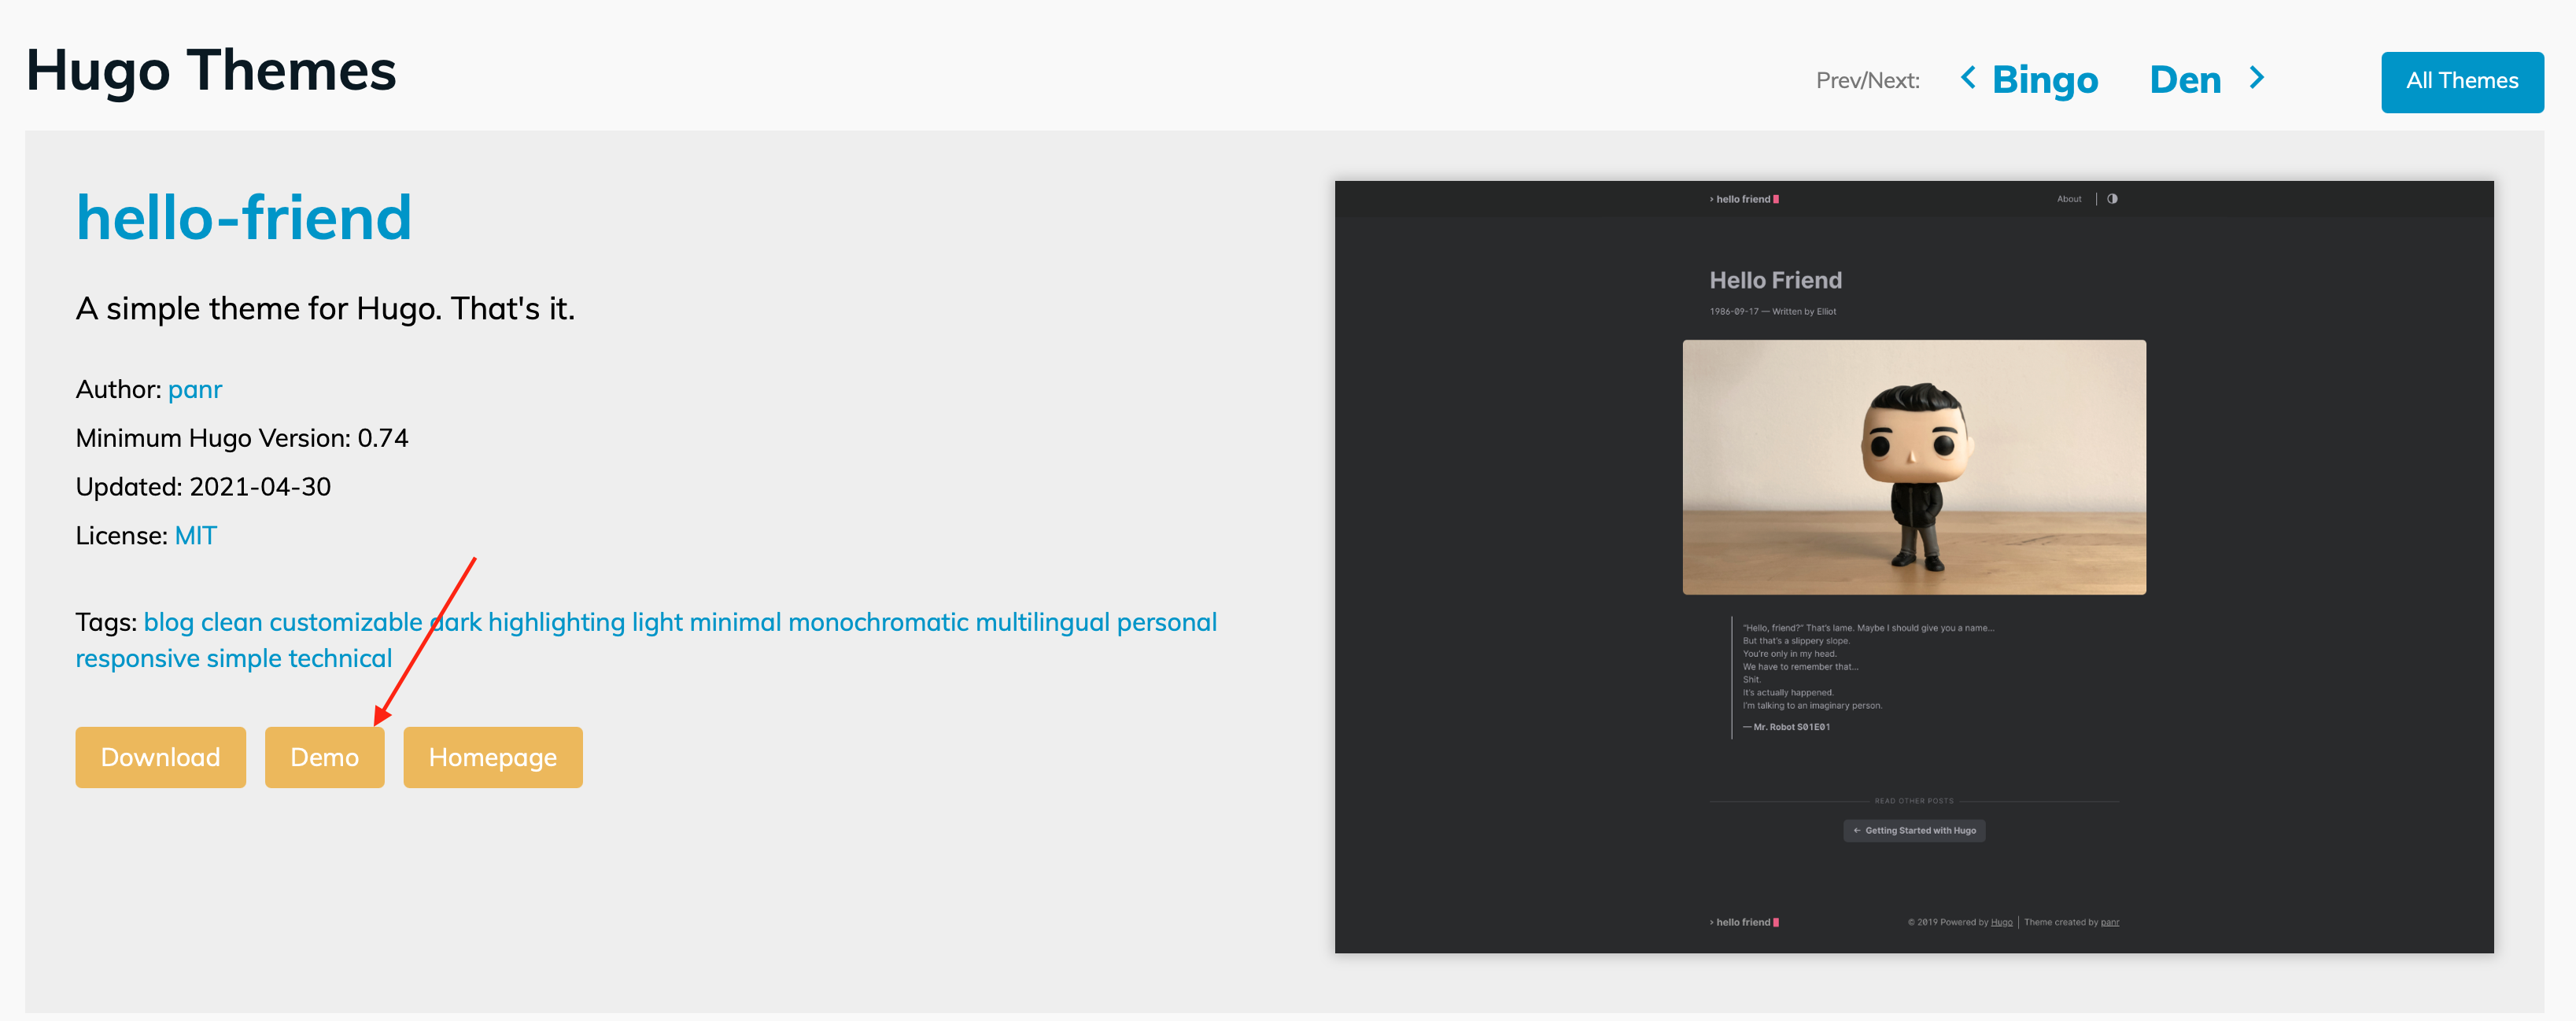 image shows option to see the demo site